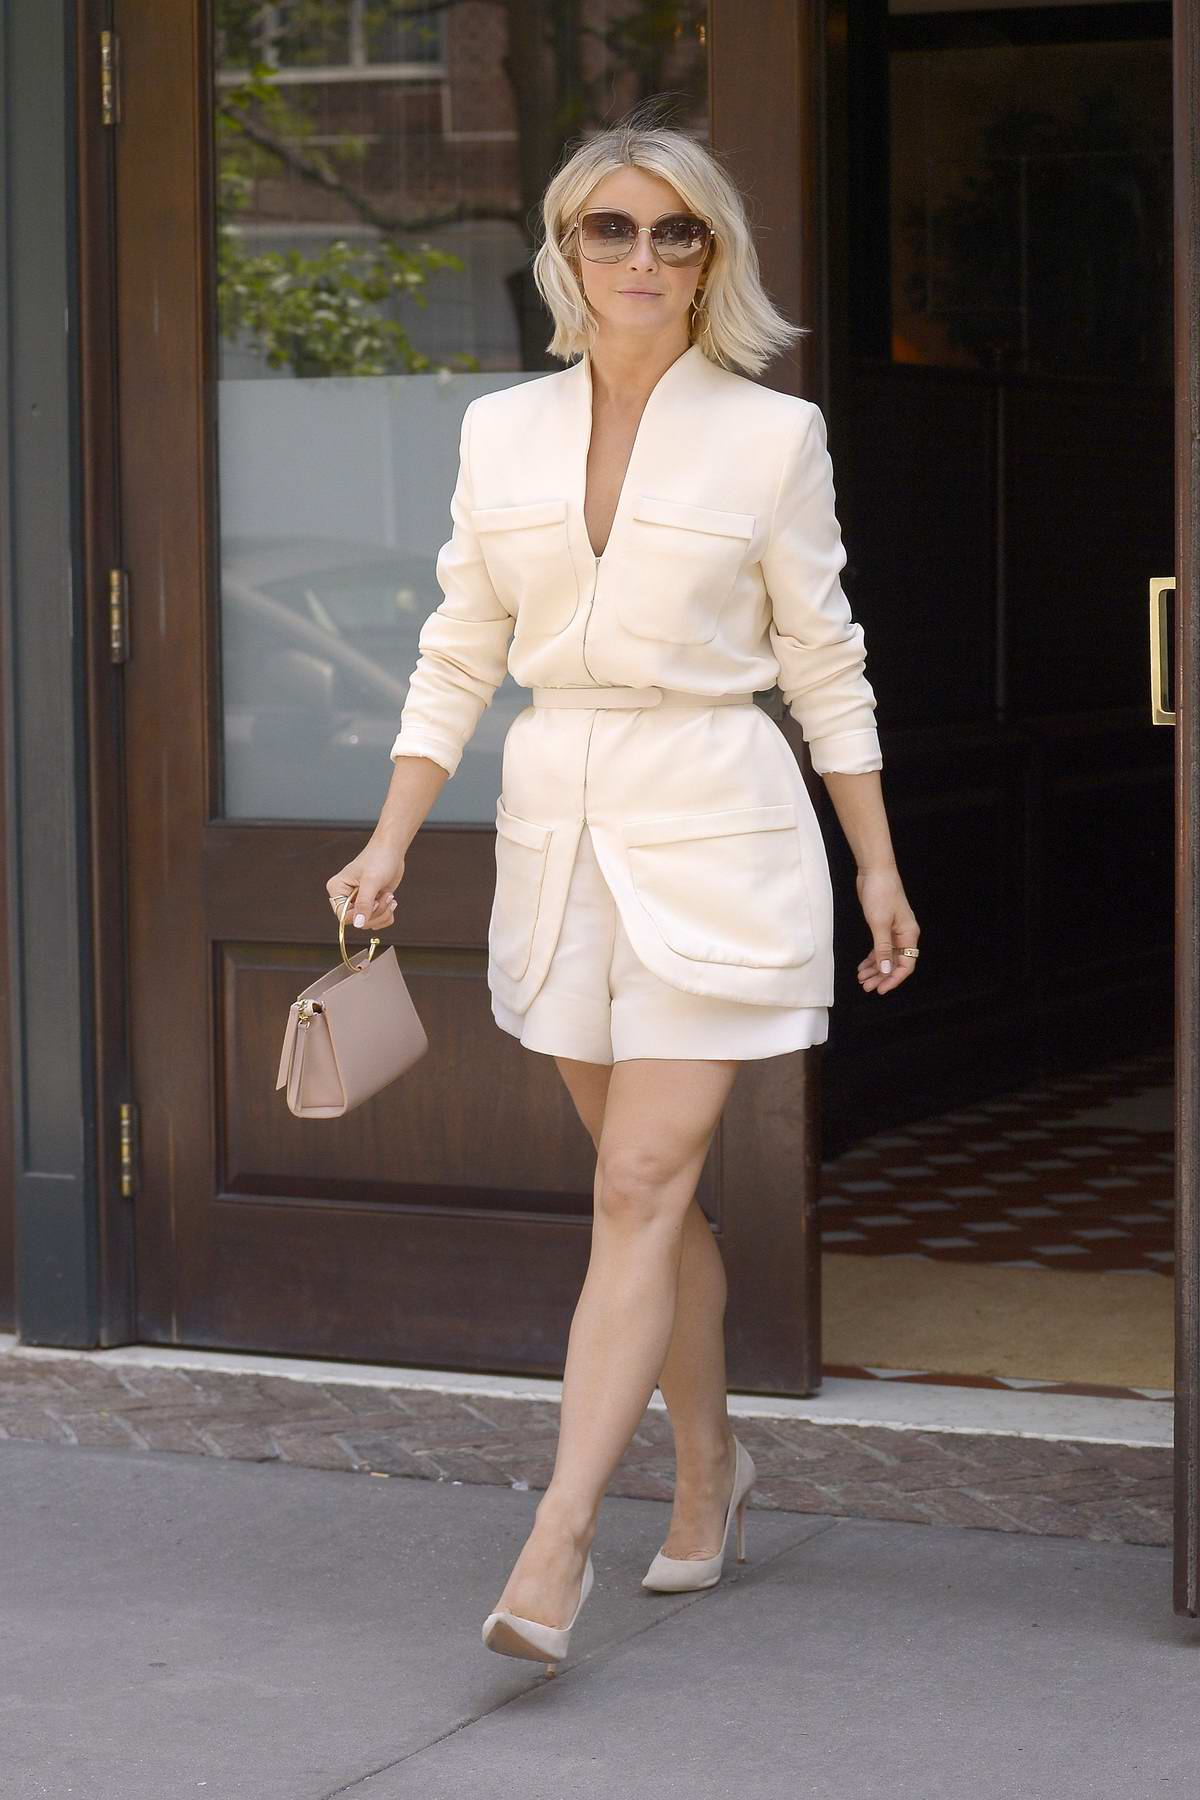 Julianne Hough looks classy in a beige blazer with matching shorts as she leaves her hotel in New York City